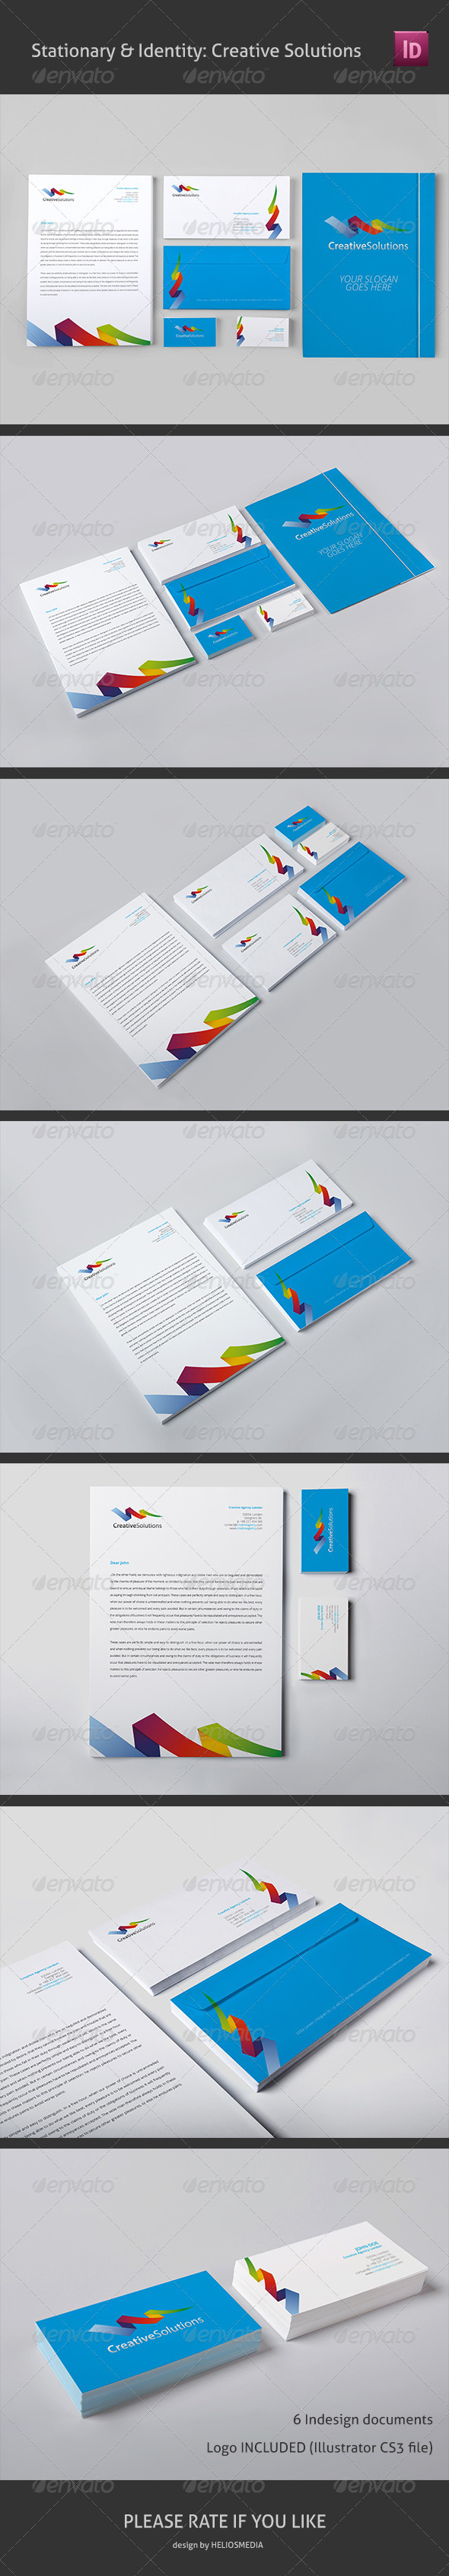 Stationery & Identity: Creative Solutions - Stationery Print Templates